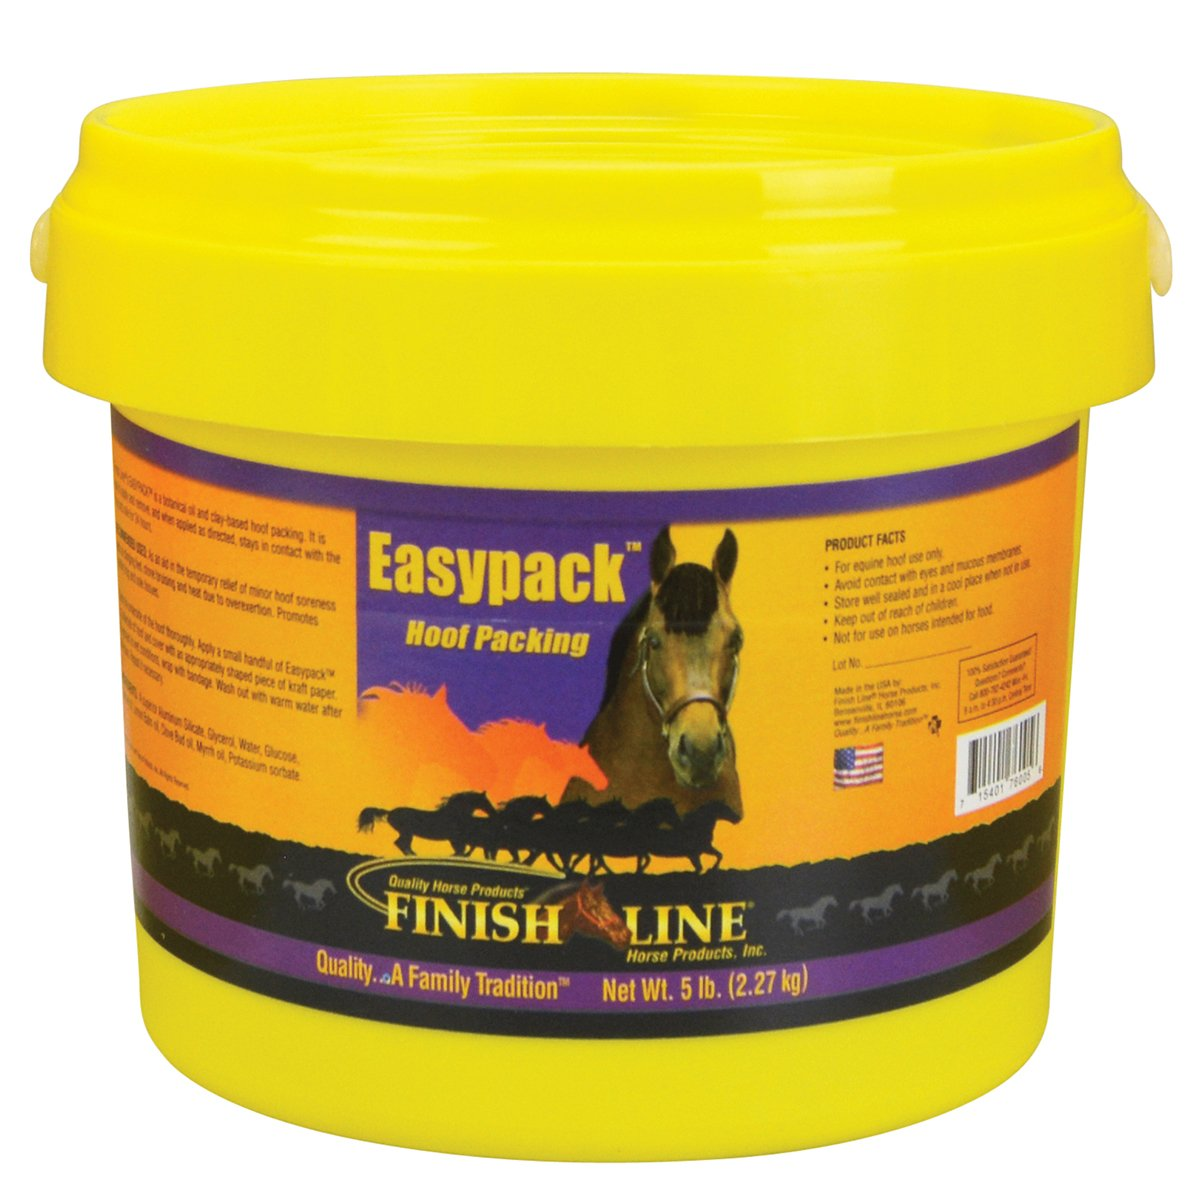 Finish Line Easypack Hoof Packing 24 lb by Finish Line (Image #1)